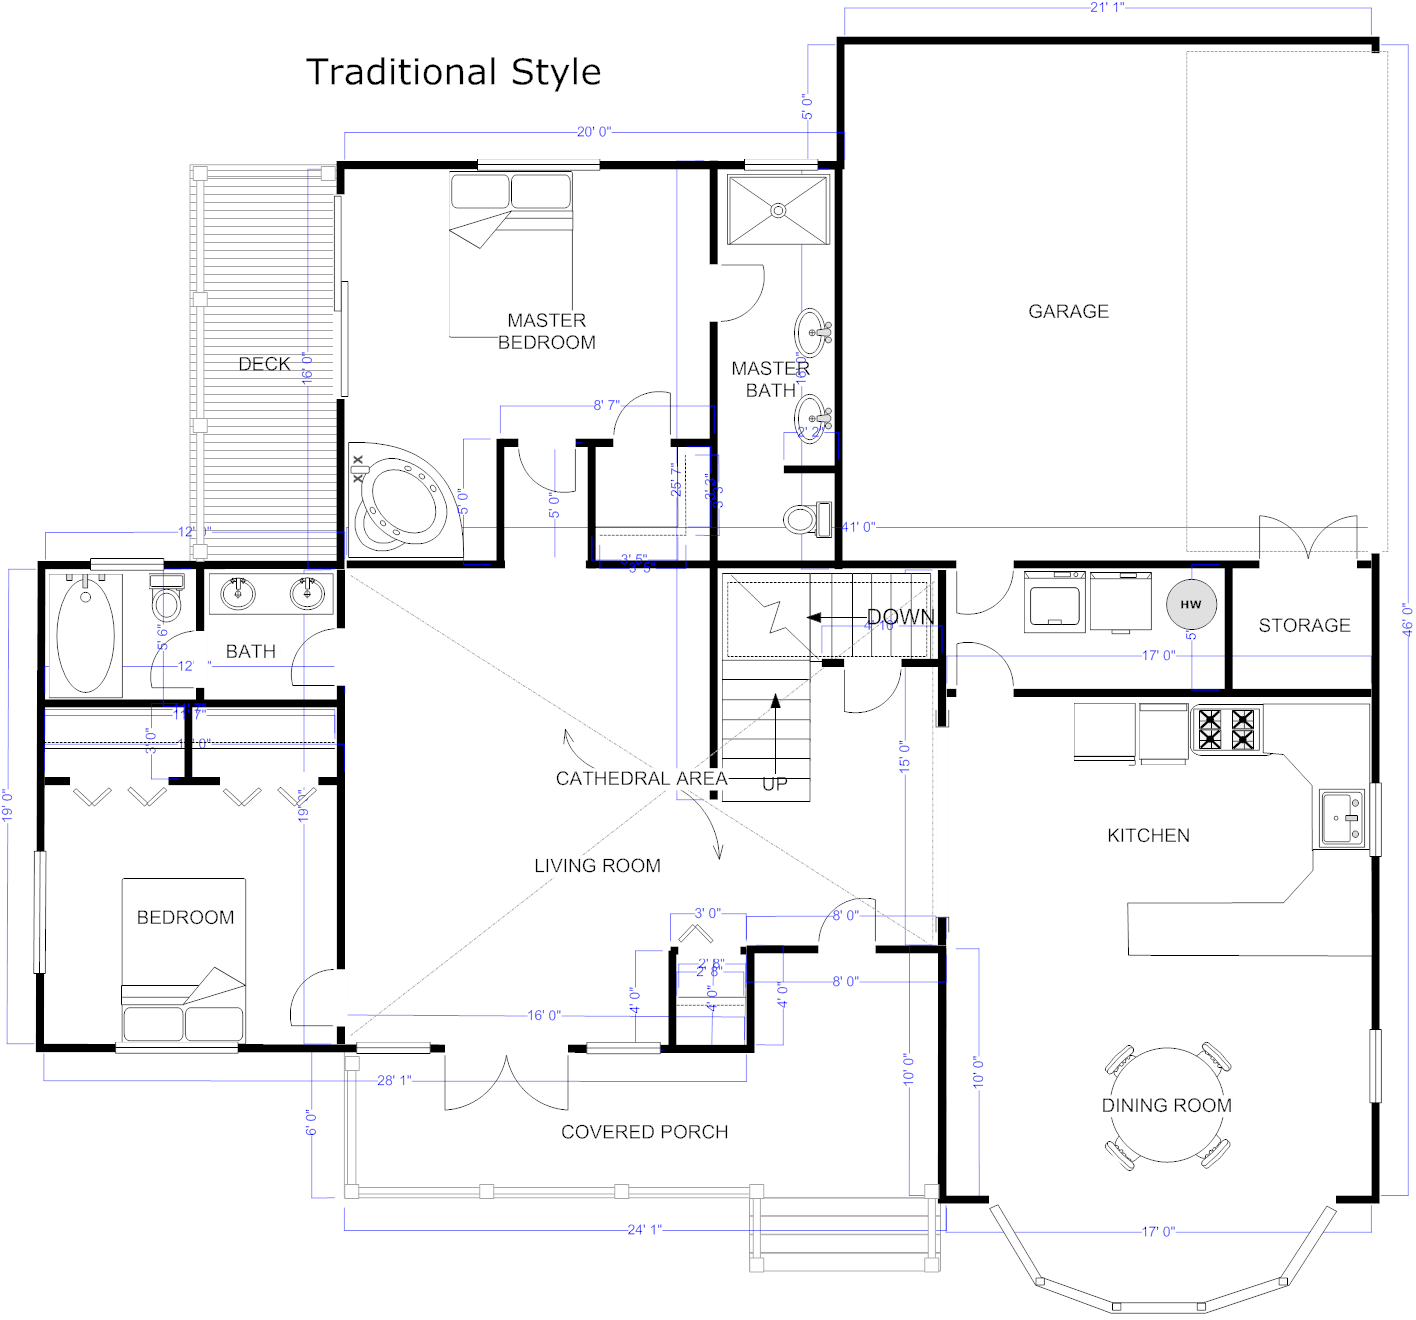 House Design Example Bn 1510011071 Architectural Software Design Architecture Plans With Templates On Draw